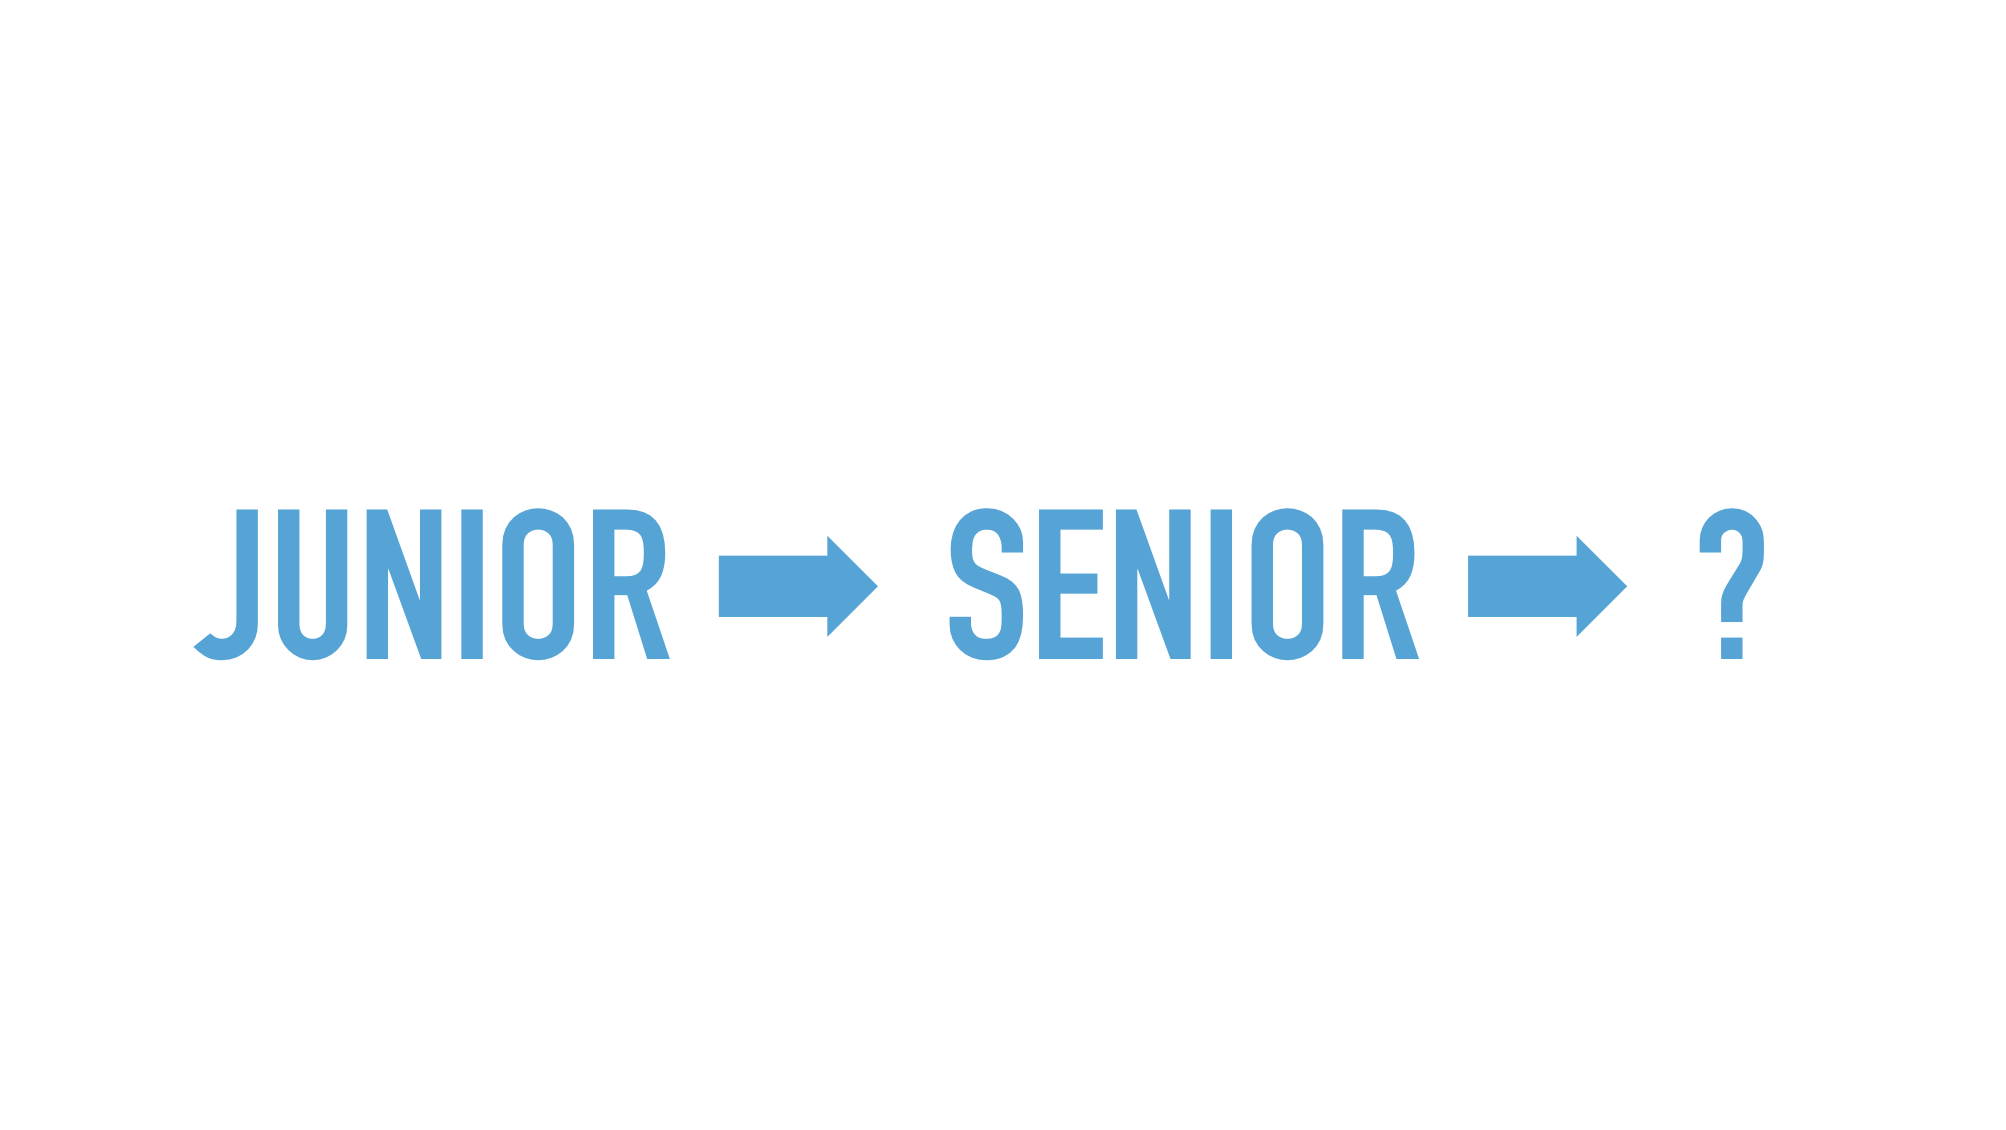 Slide text: Junior - /> Senior -> ?